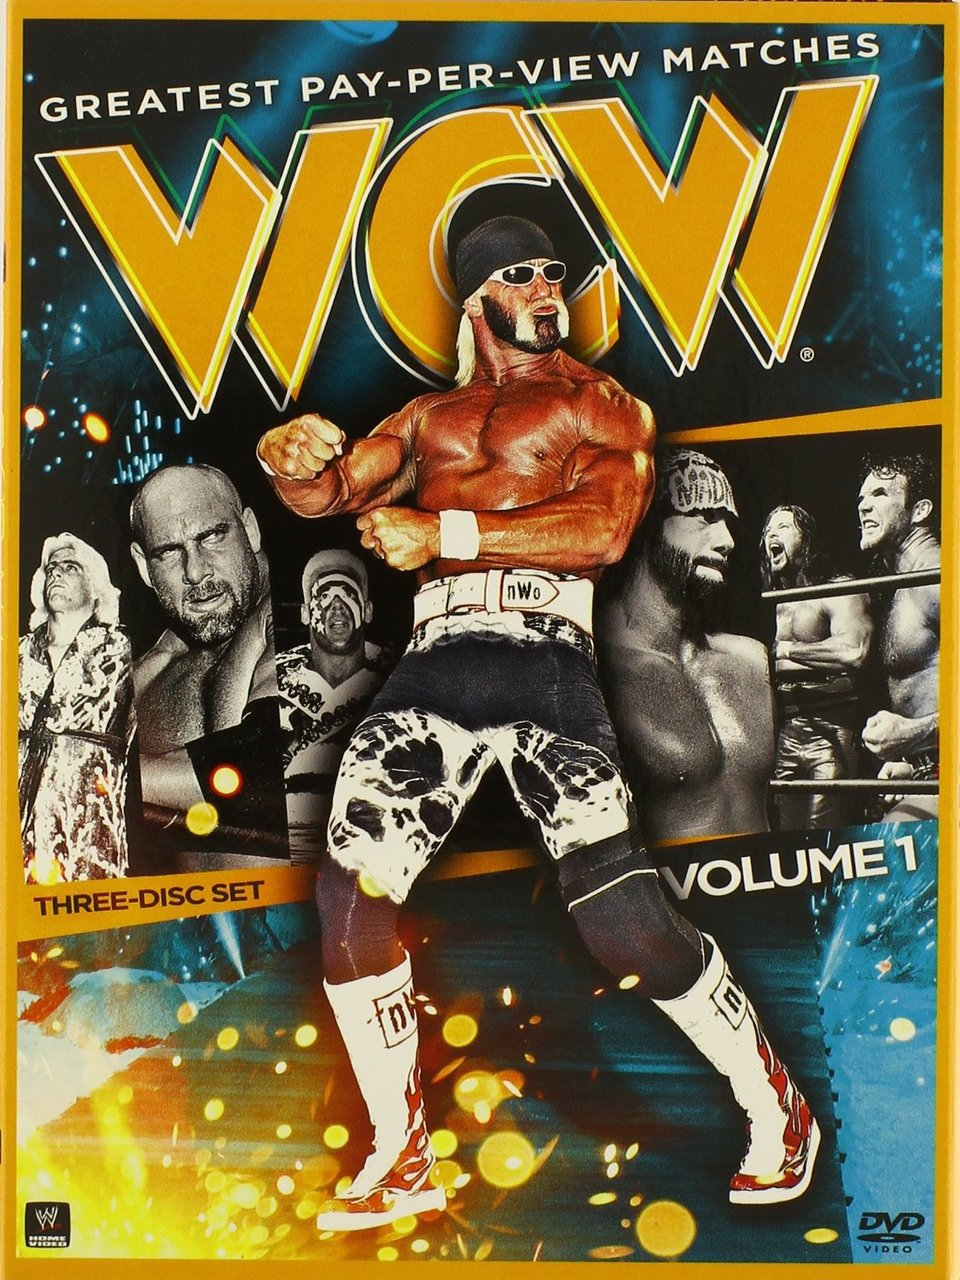 WCW's Greatest Pay-Per-View Matches, Vol. 1 DVD - Brand New